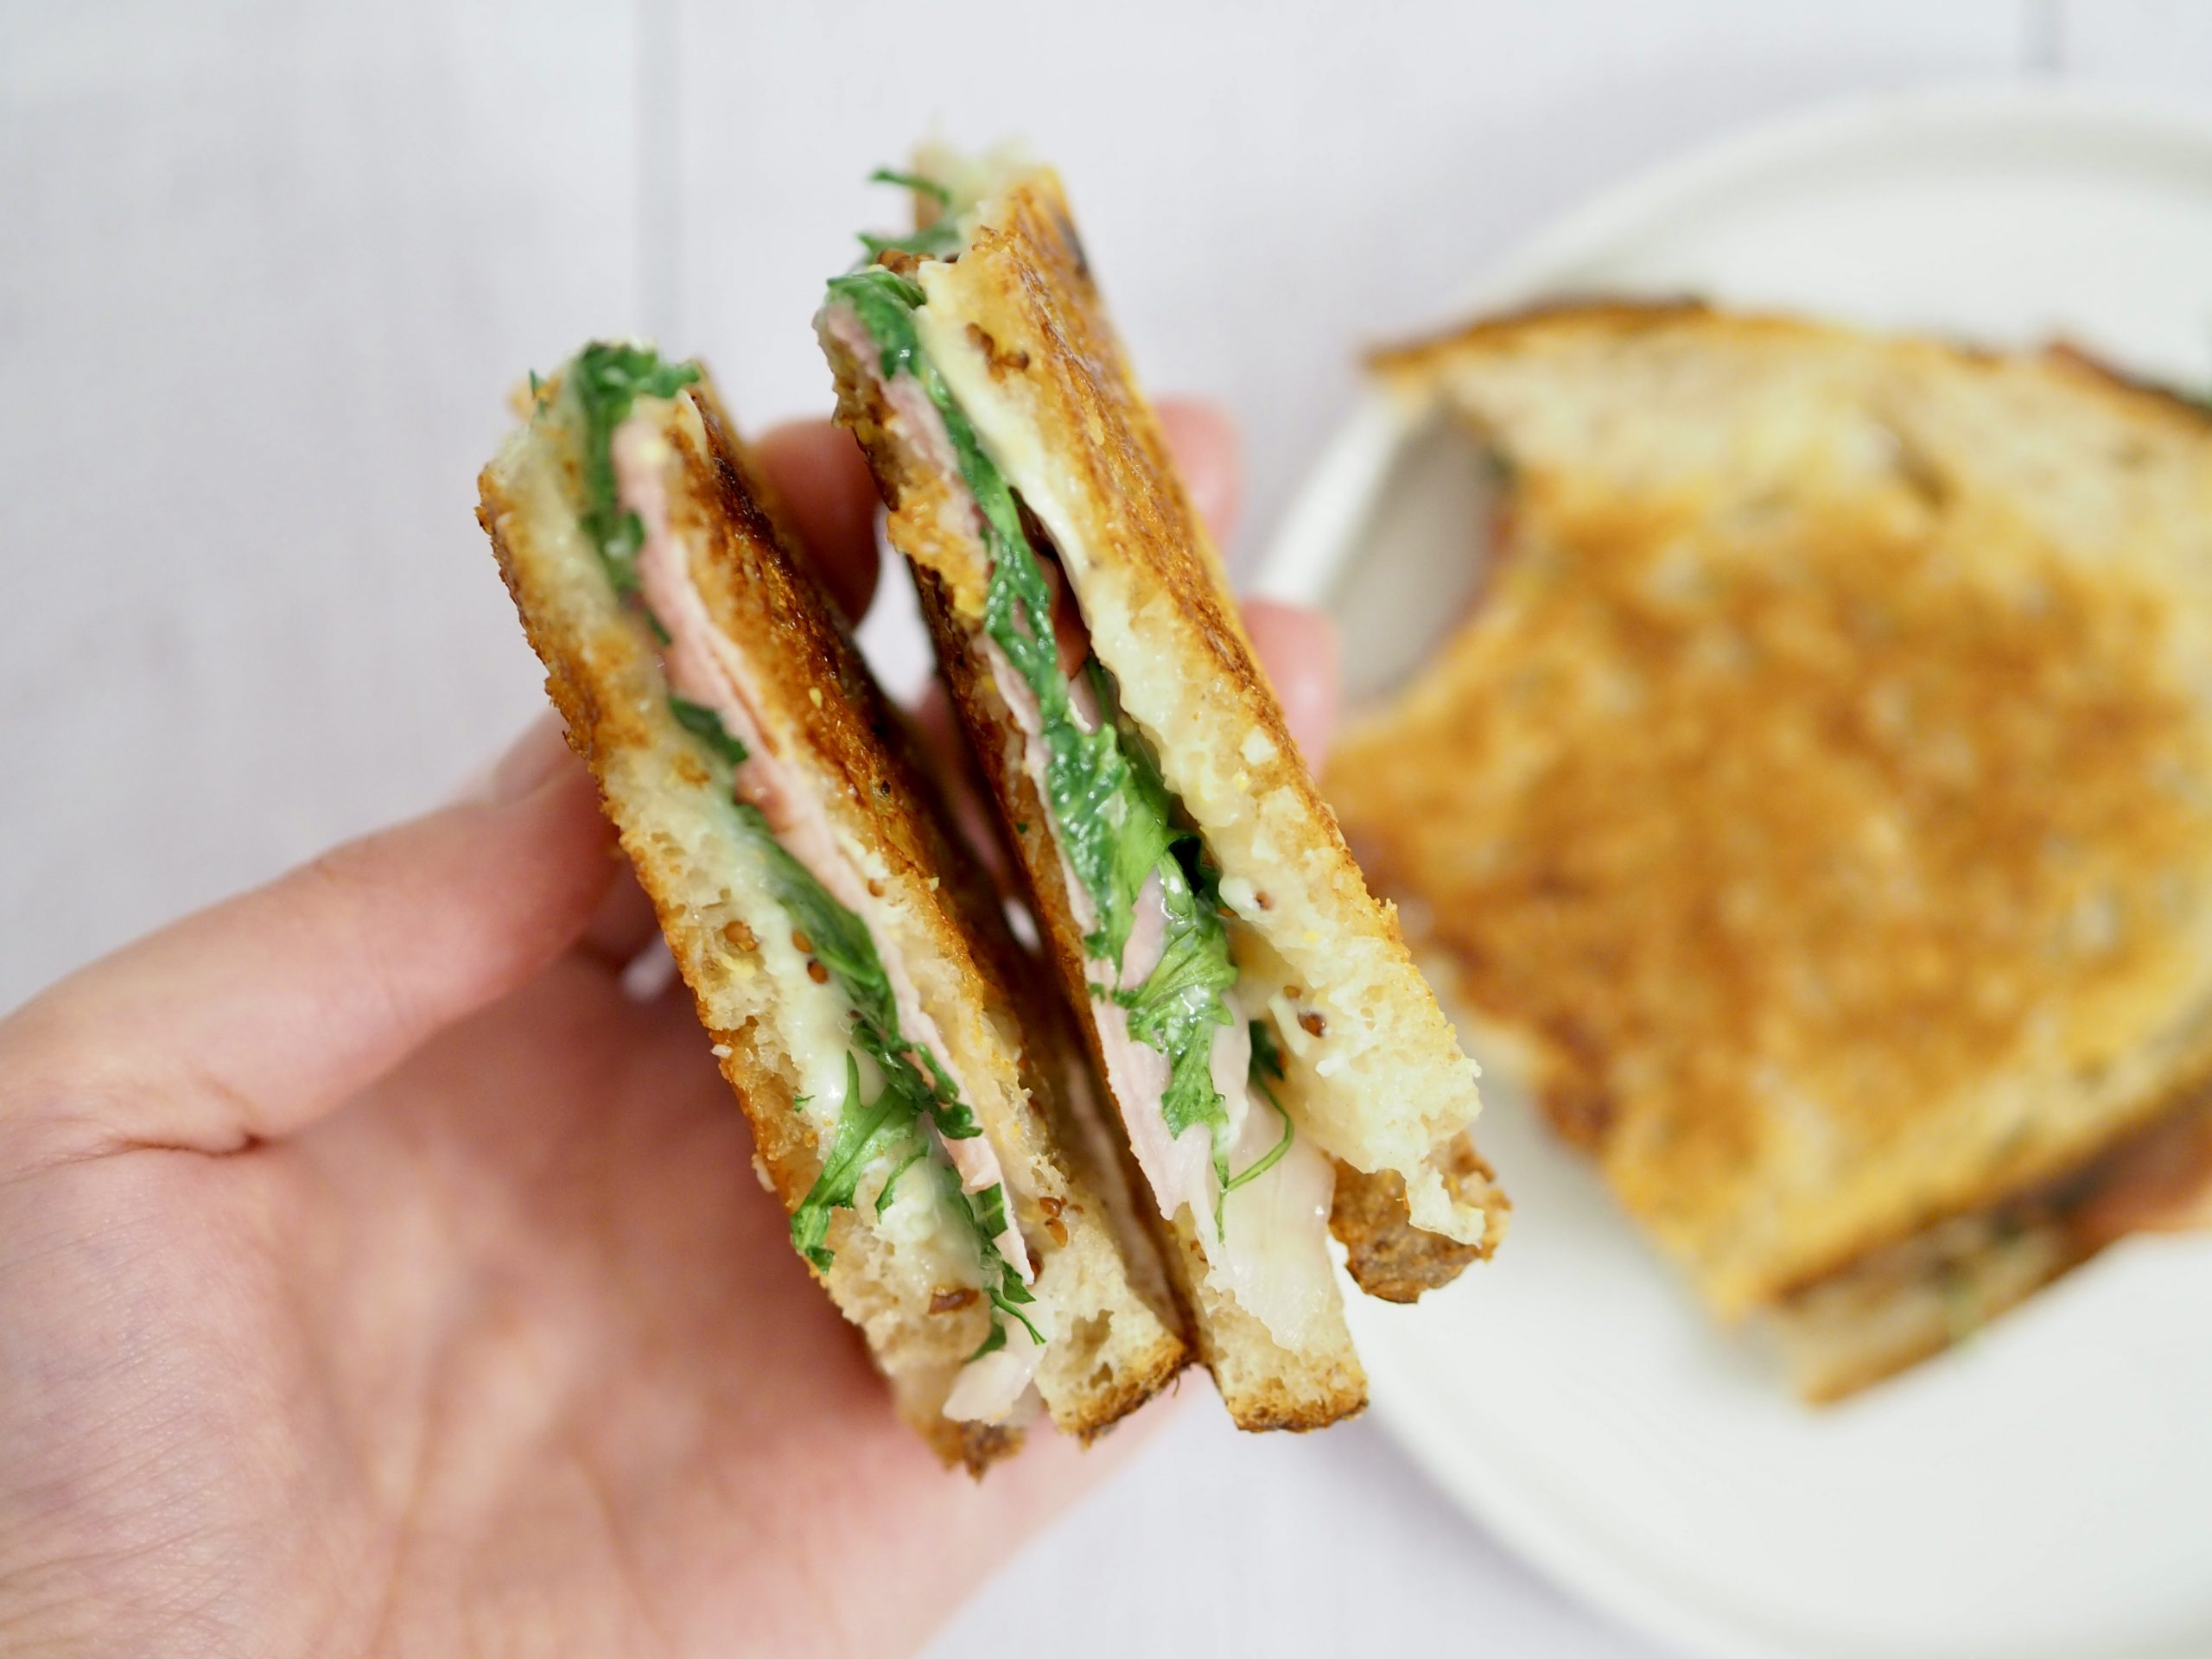 Grilled cheese jambon fumé et brie